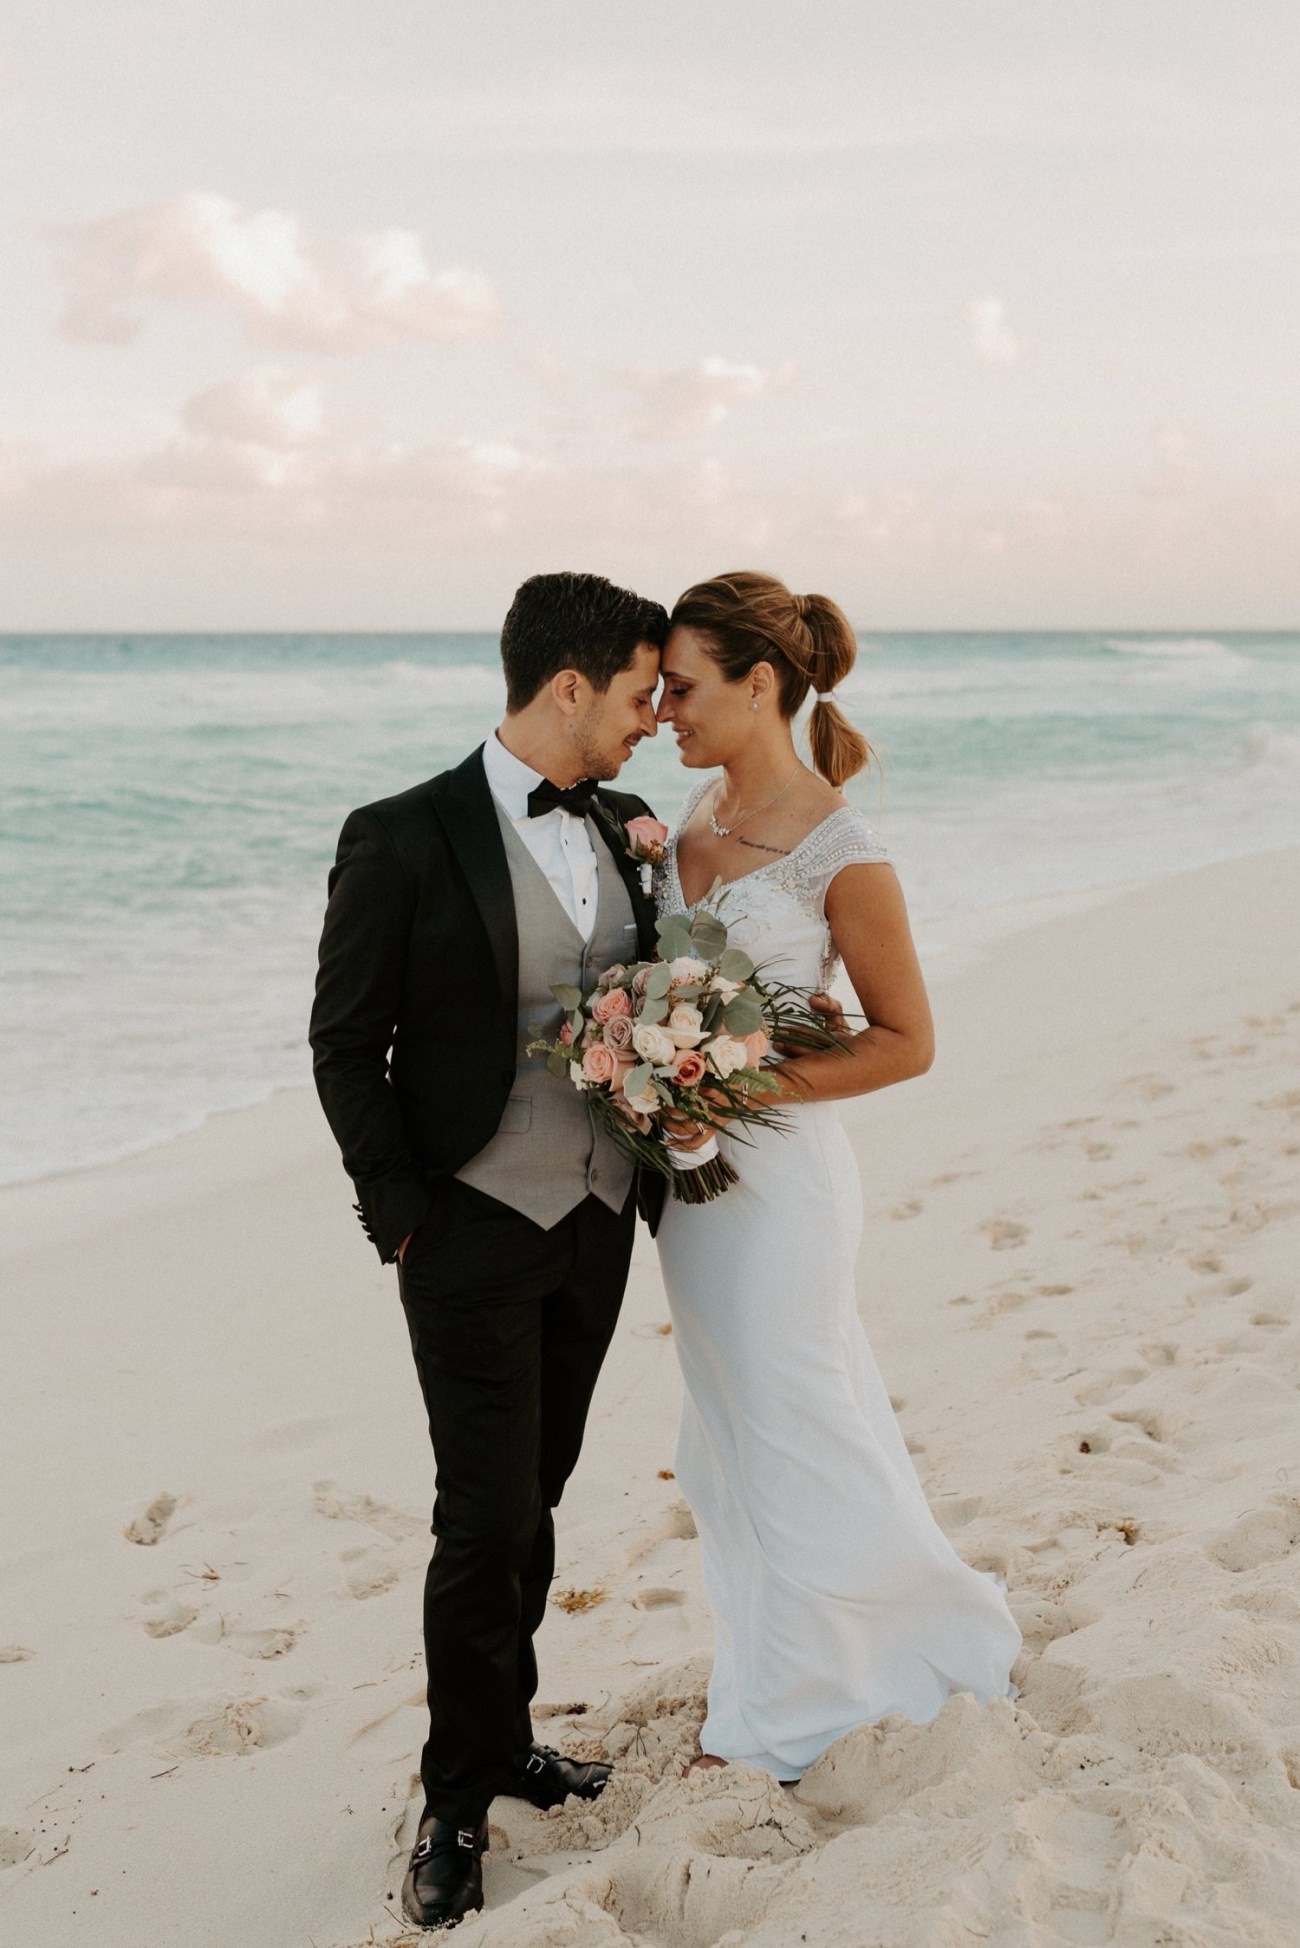 Cancun Destination Wedding Mexico Tulum Wedding Photographer Anais Possamai Photography 042